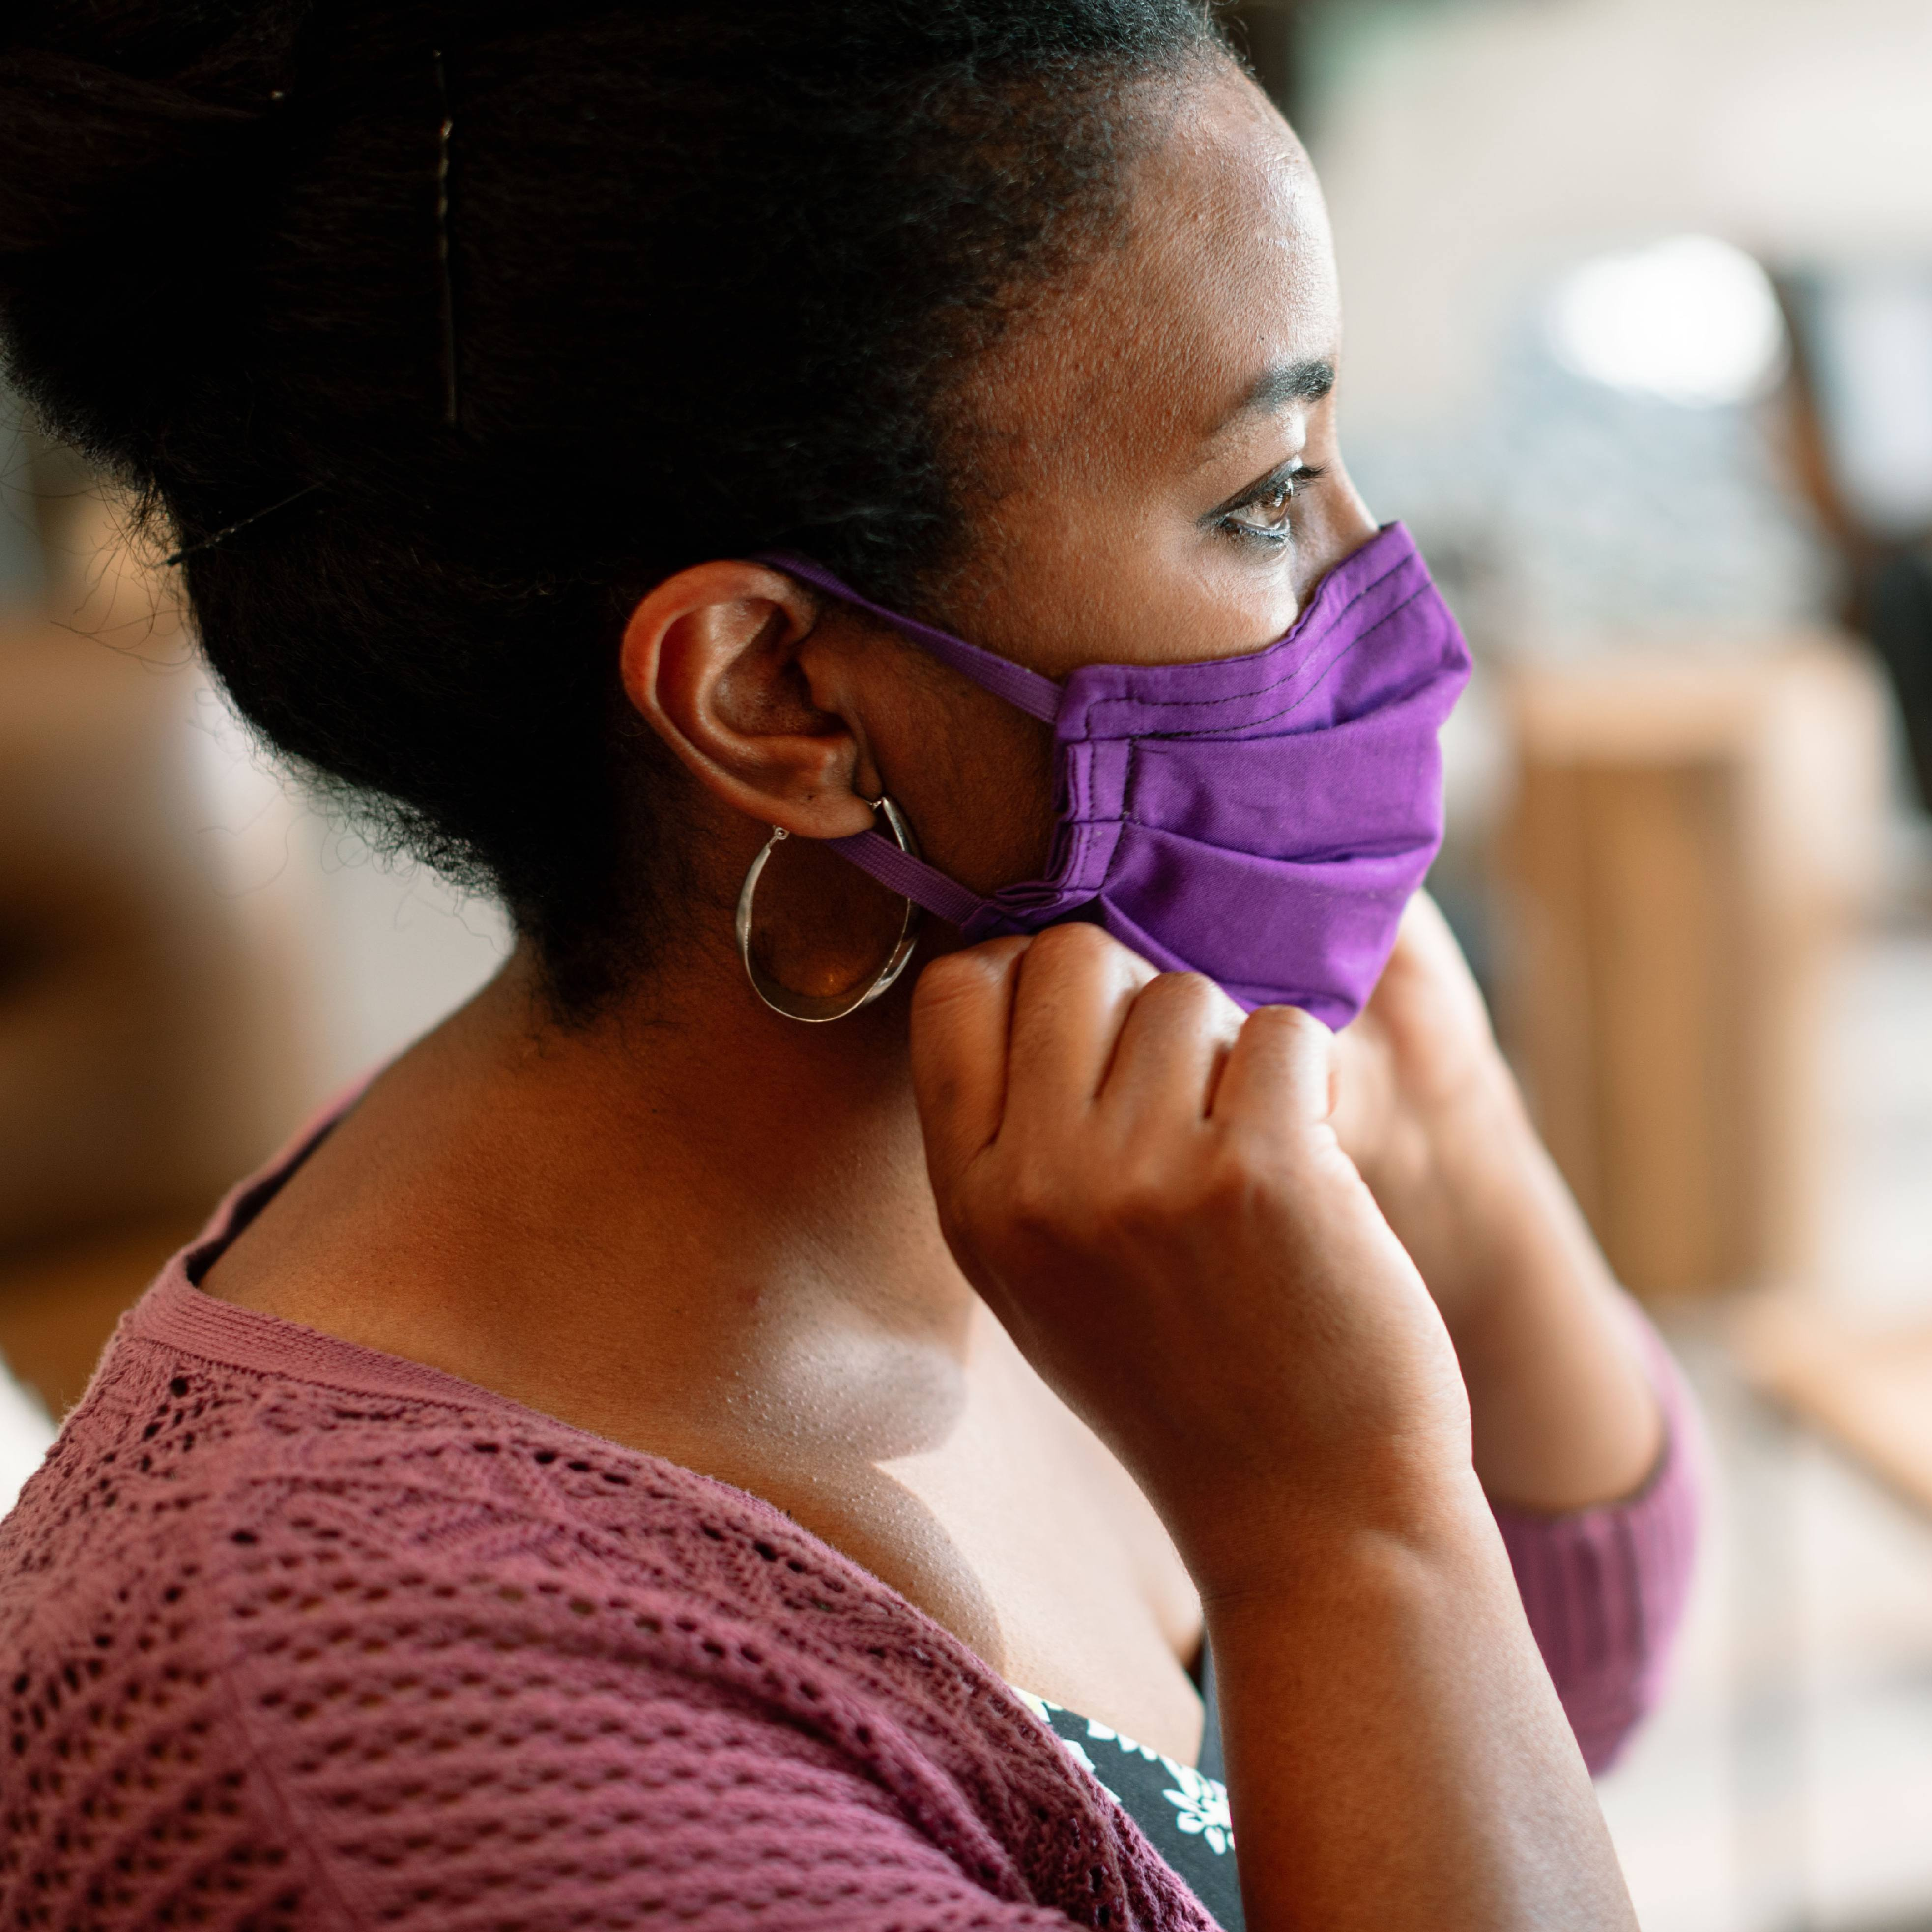 a young Black woman looking out a window and putting on a purple face mask